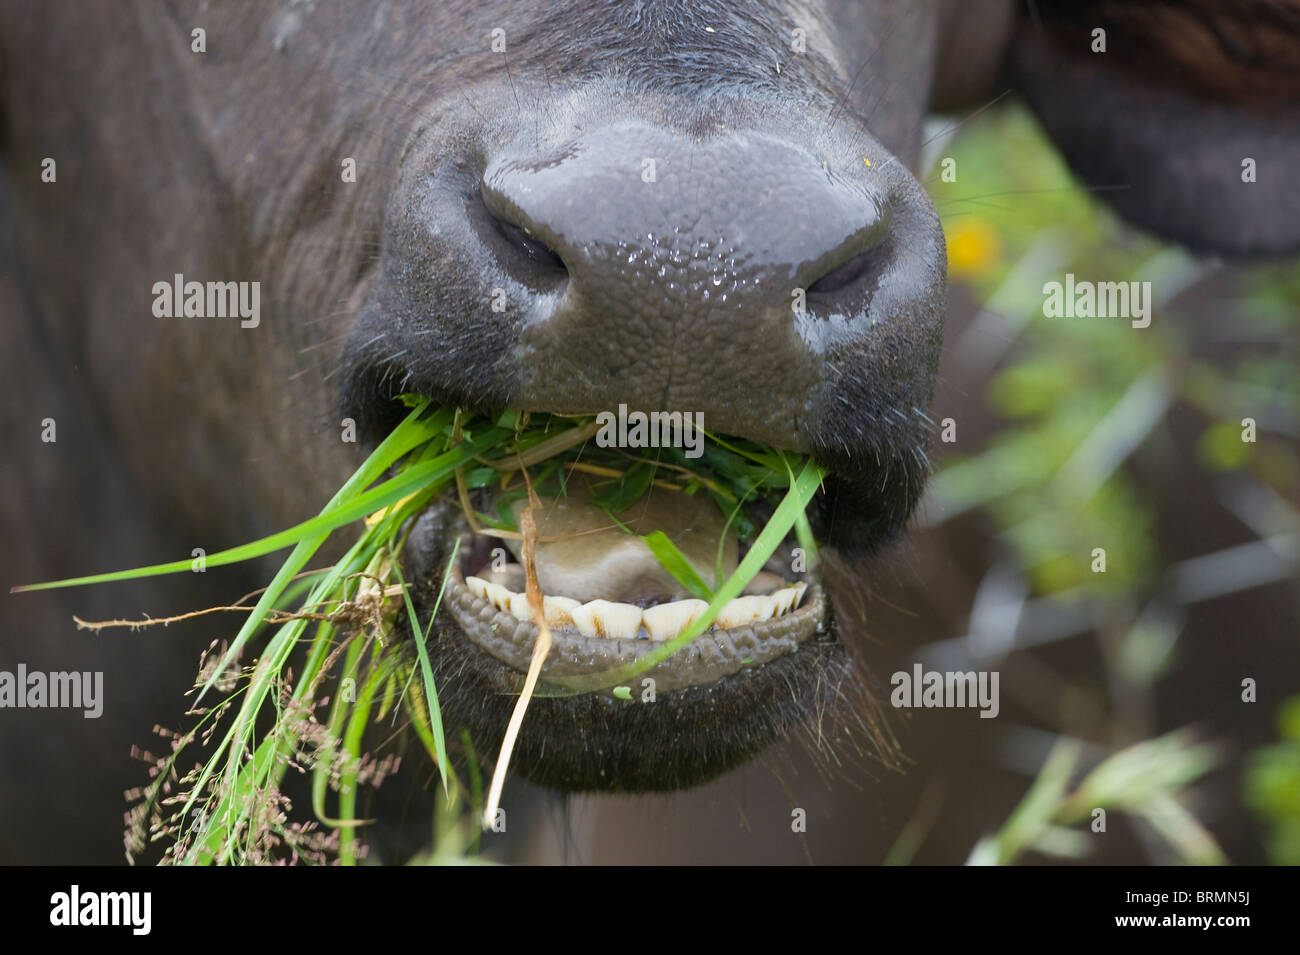 Close up of a Buffalo's open mouth chewing green grass - Stock Image